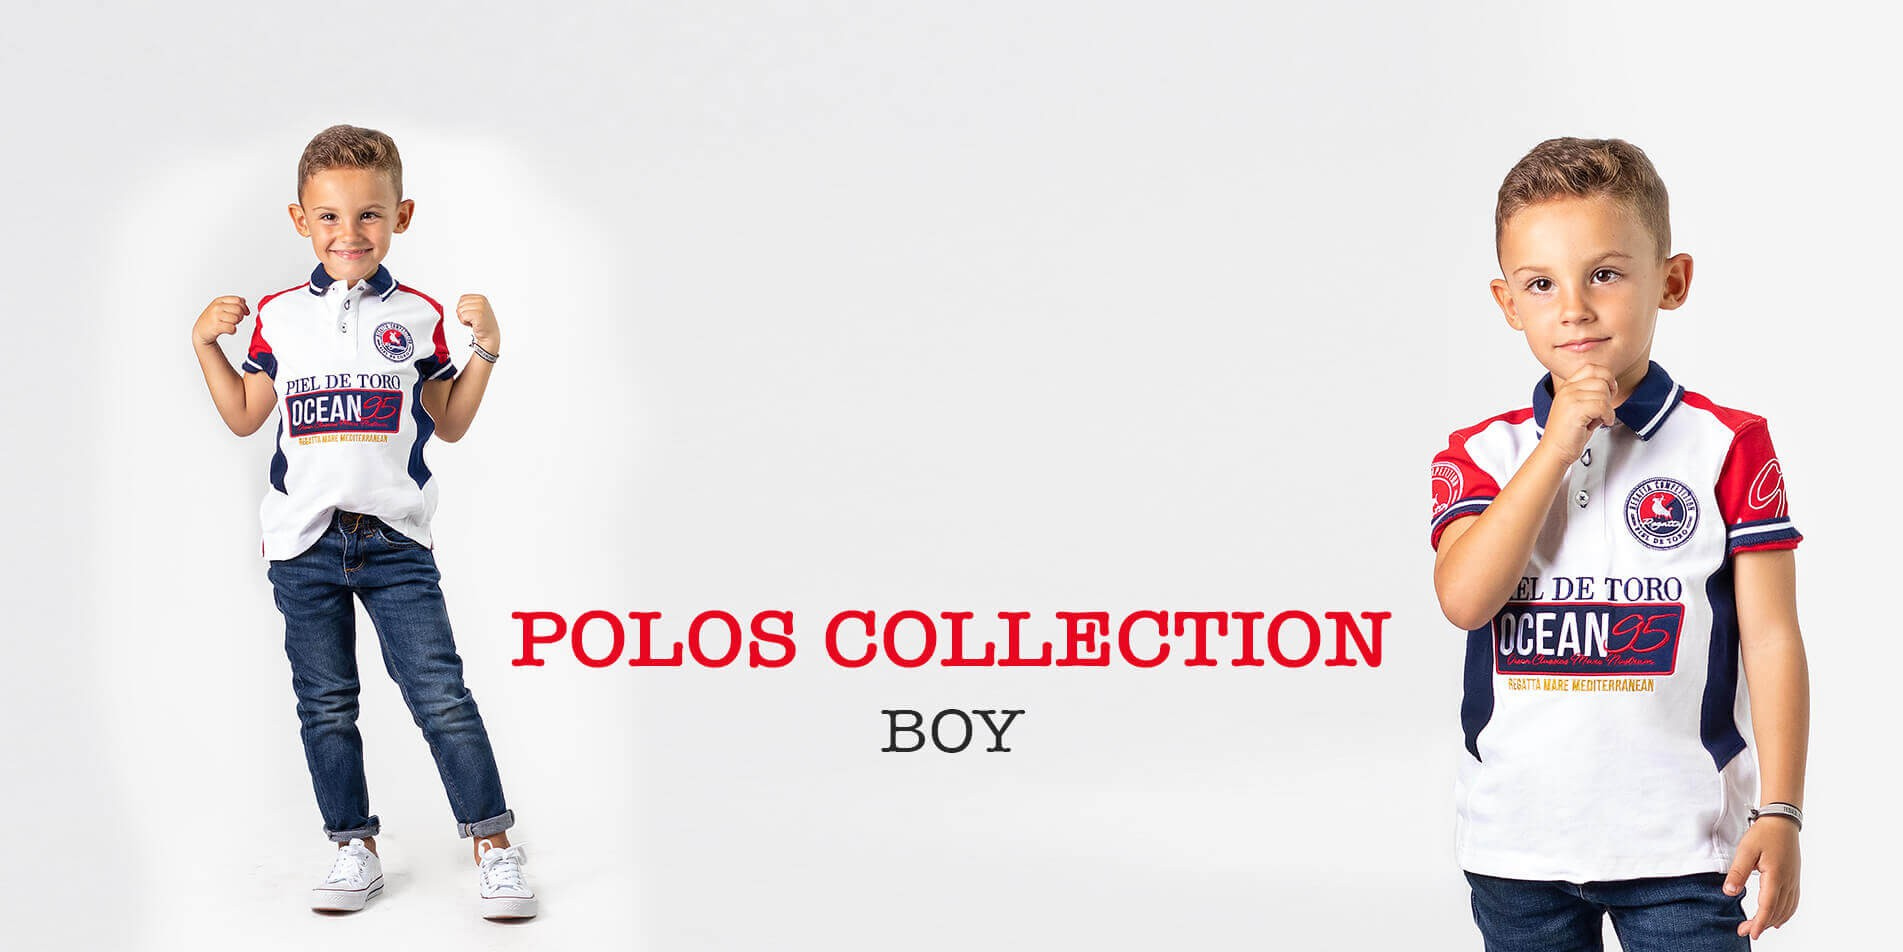 Boy collection image section